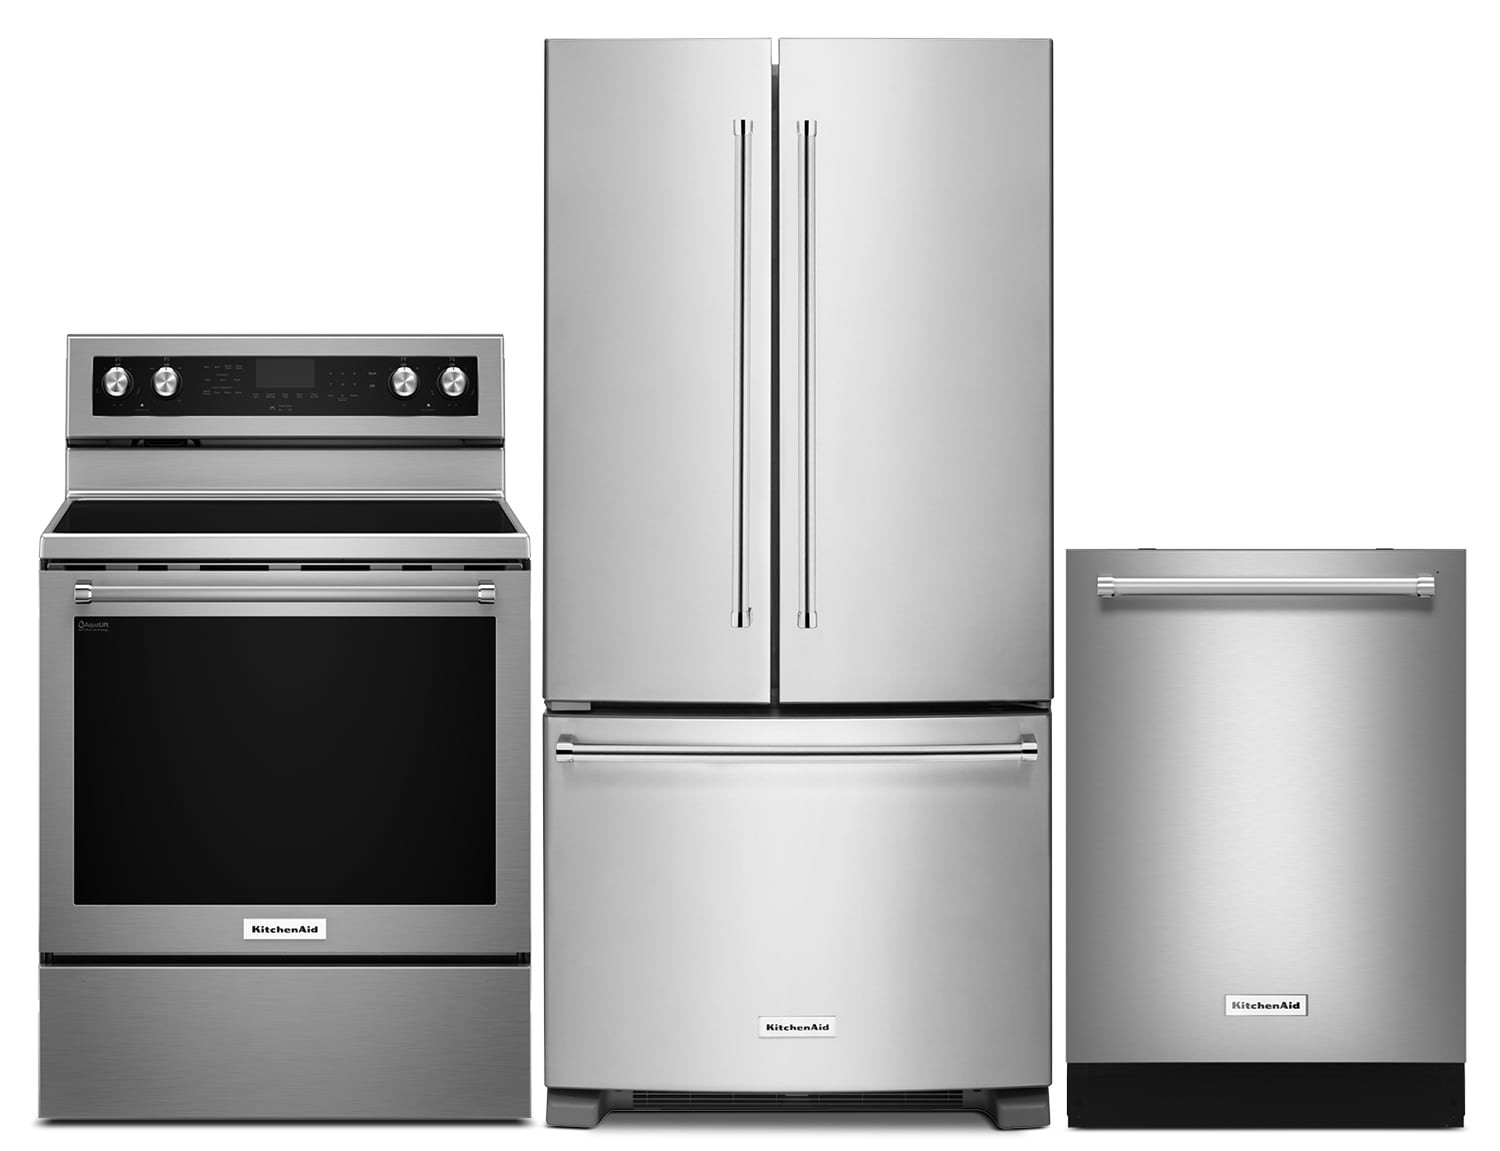 """Cooking Products - KitchenAid 22.1 Cu. Ft. Refrigerator, 6.4 Cu. Ft. Range and 24"""" Dishwasher - Stainless Steel"""